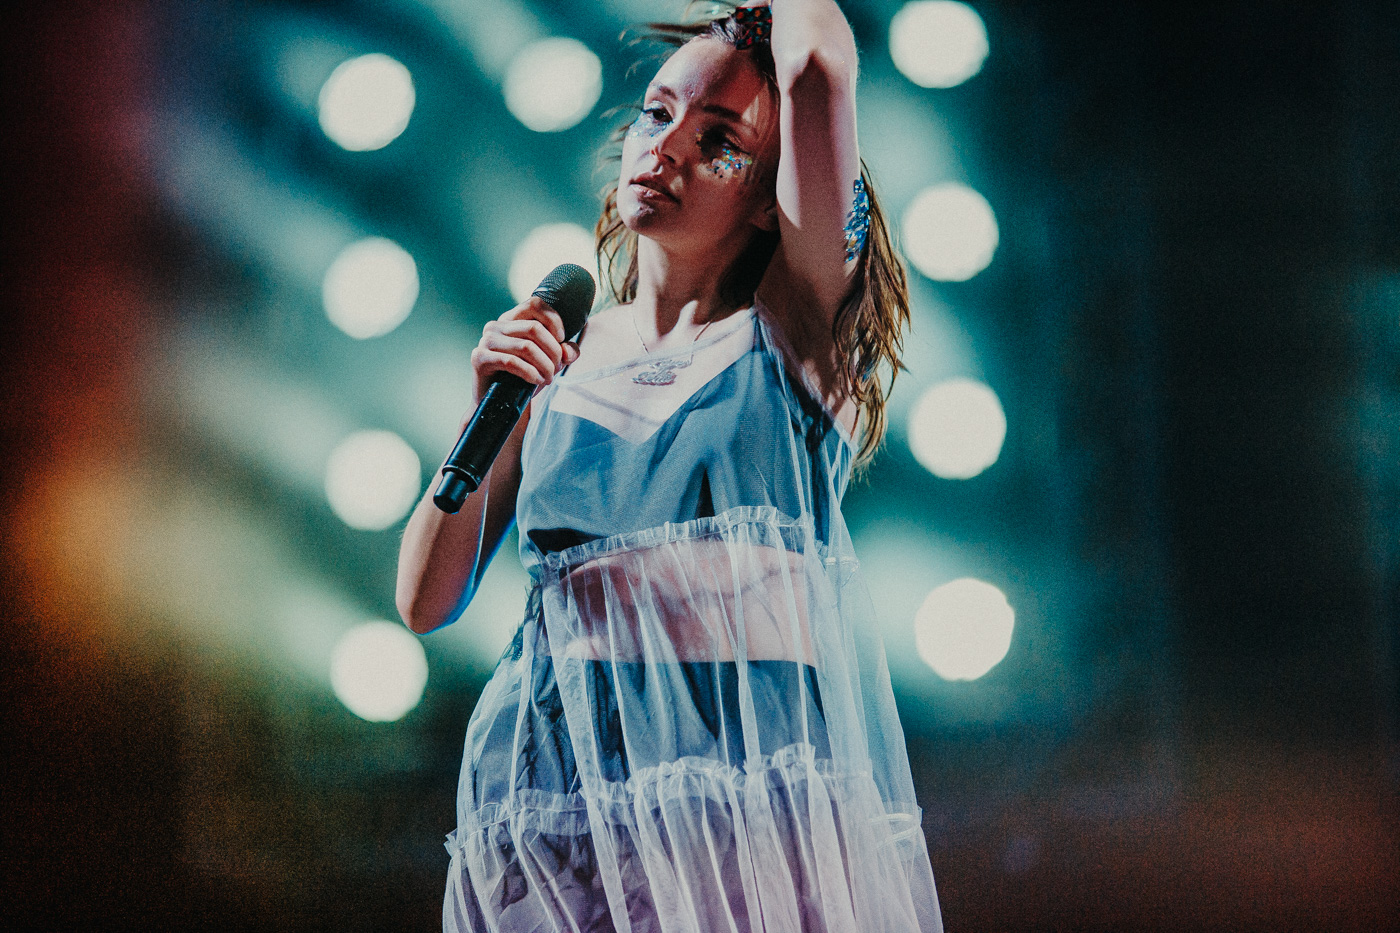 CHVRCHES, photo by Kimberley Ross